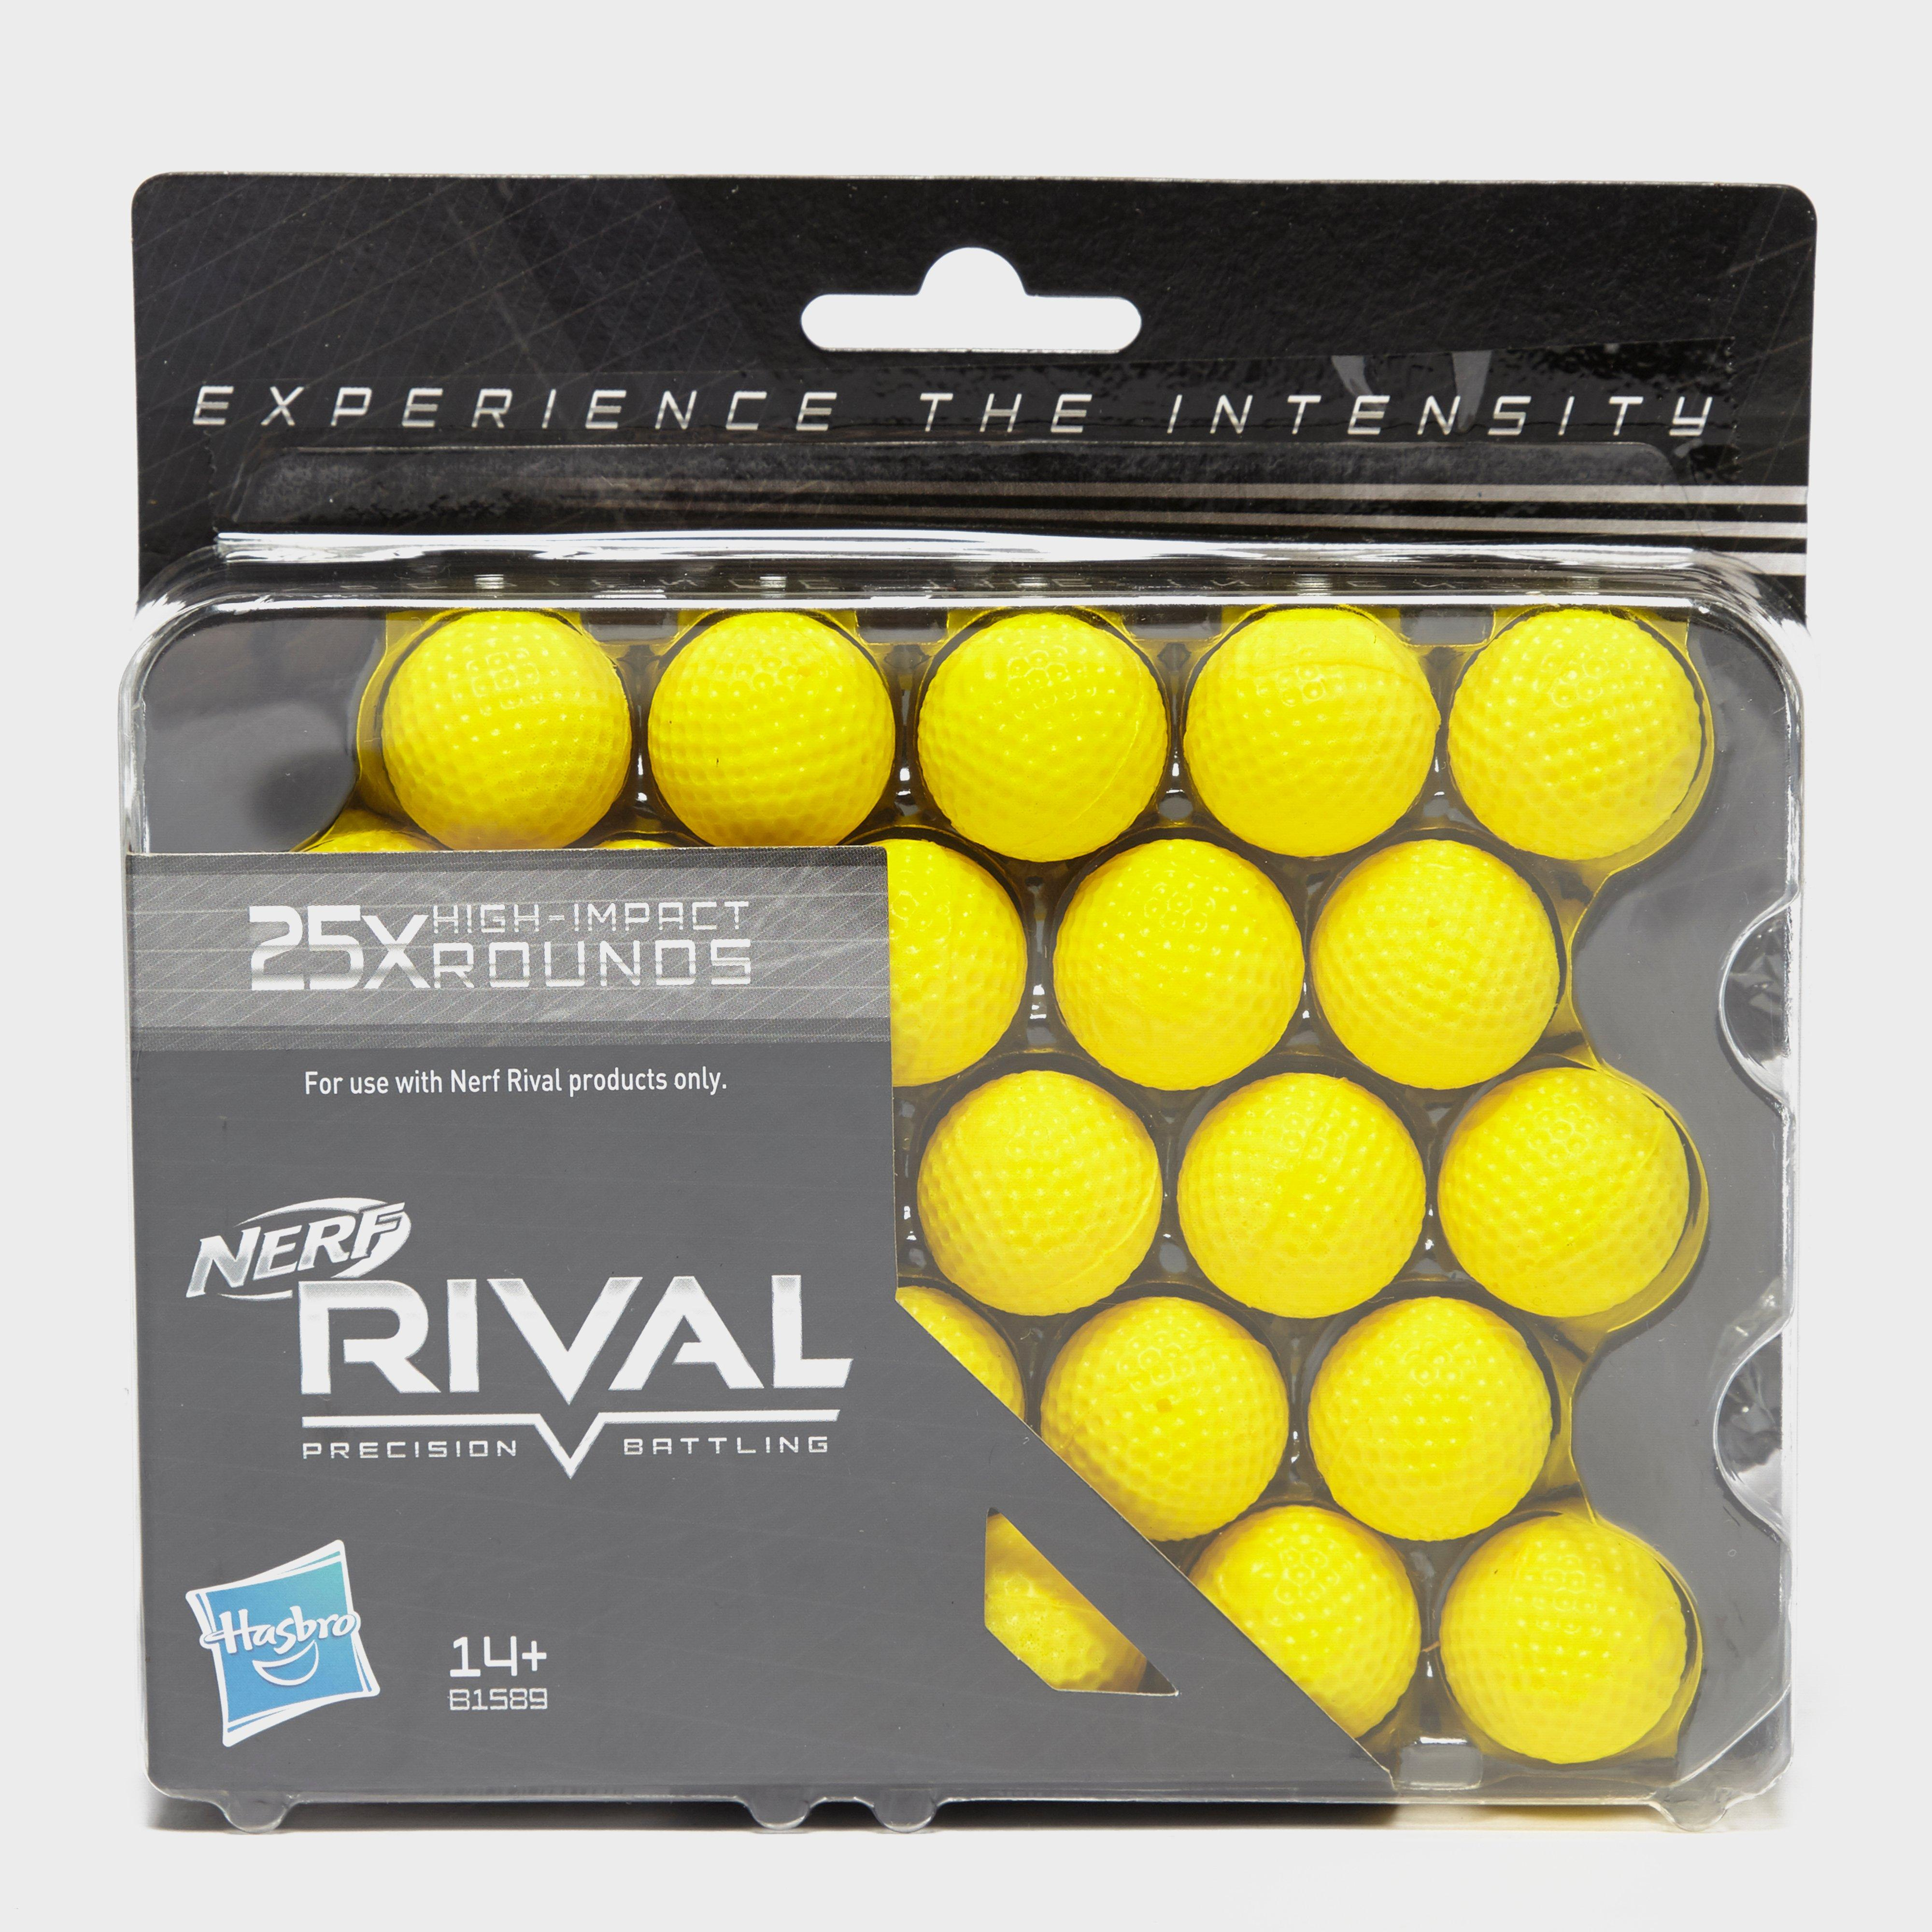 NERF Nerf Rival 25-Round Refill Pack - N/A, N/A